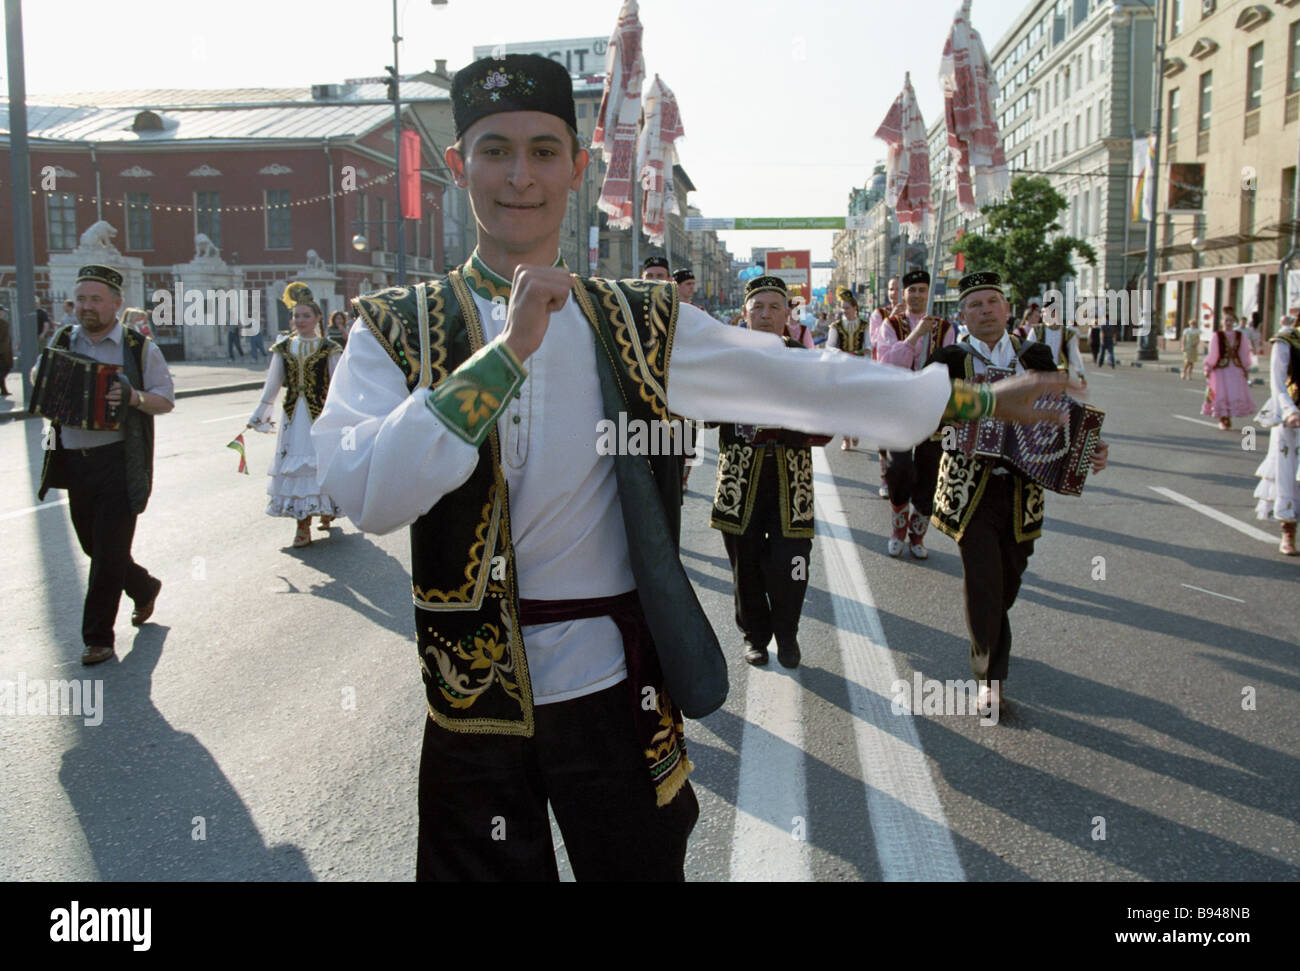 Delegation of the Republic of Tatarstan at the Parade of peoples and lands of Russia - Stock Image